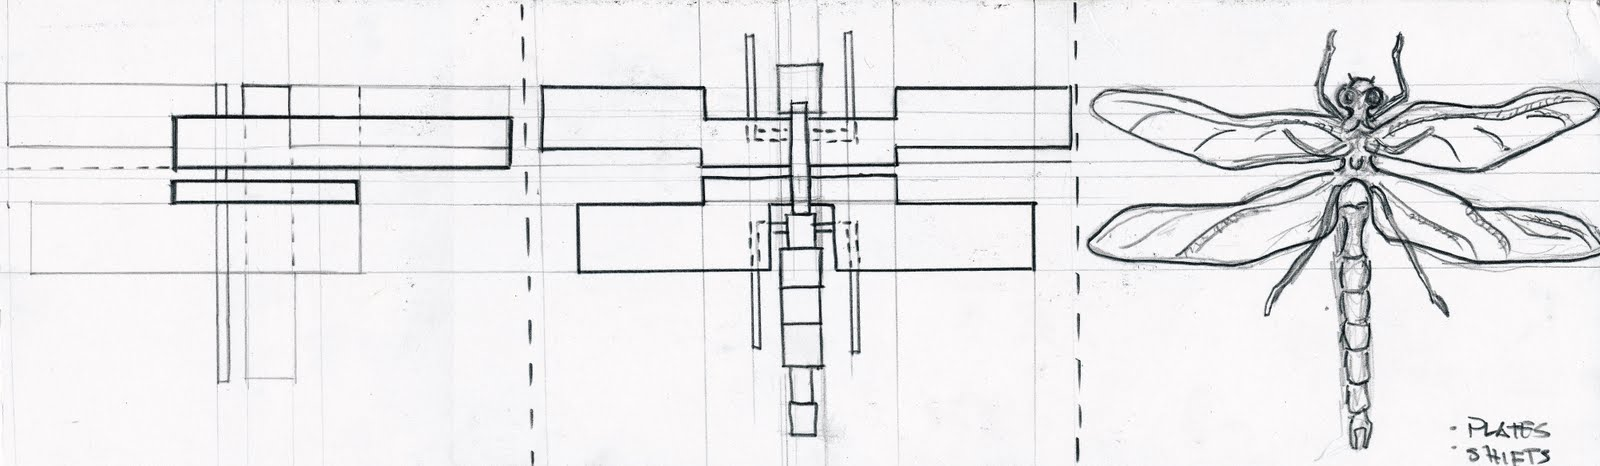 P1 X4 Analytical Drawings Floridian Chorography